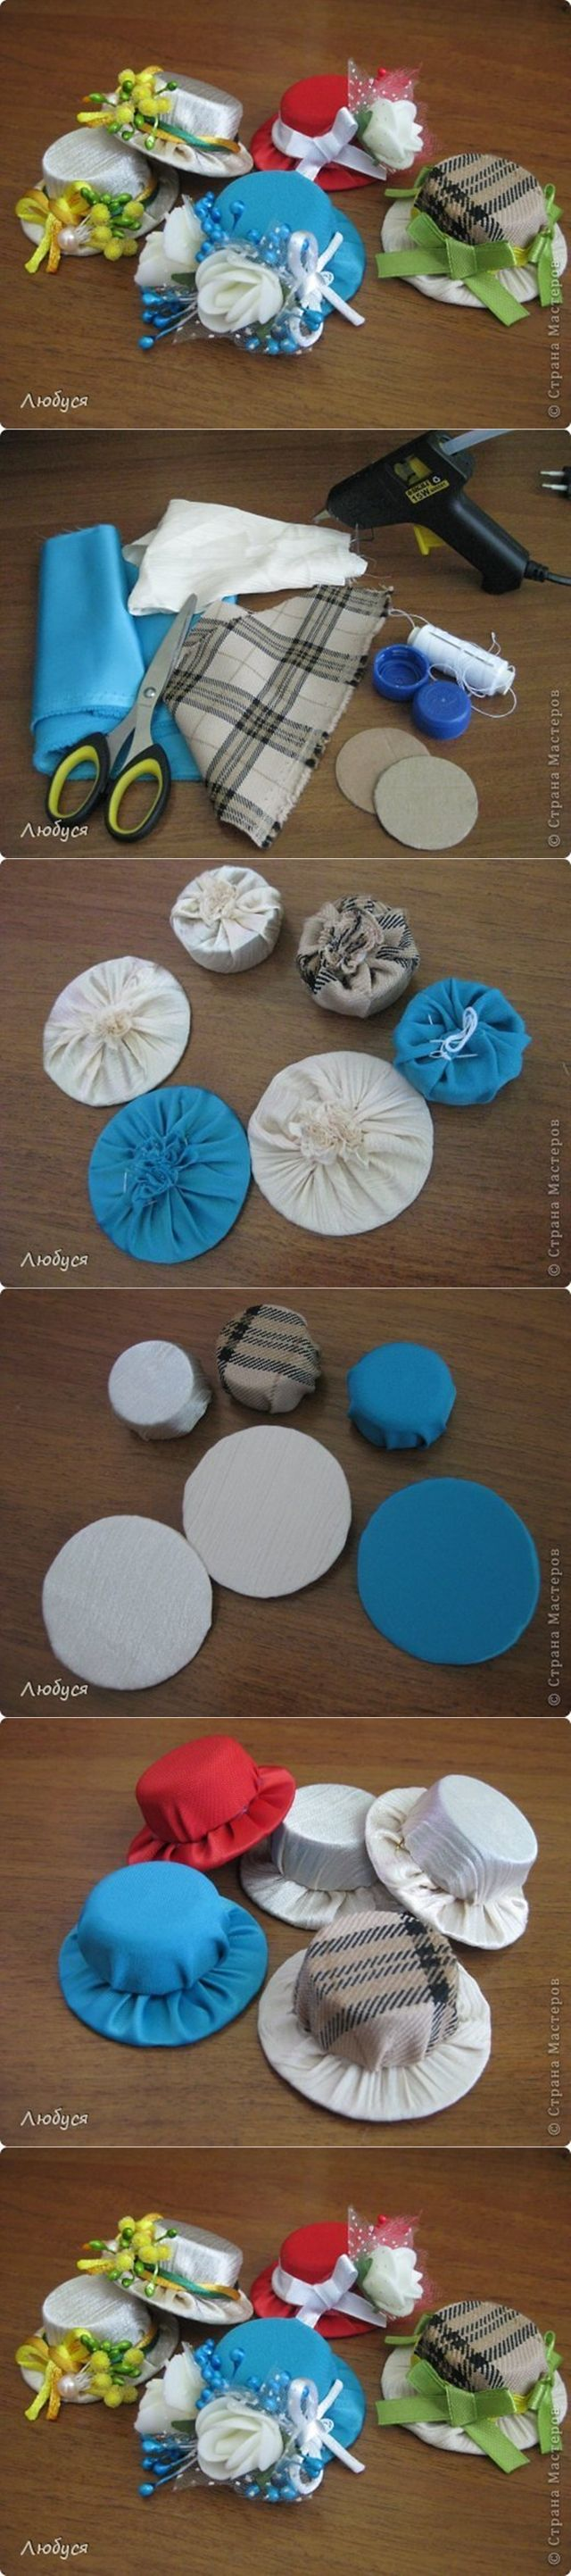 DIY Cute Hat Hairclip from Plastic Cap | www.FabArtDIY.com LIKE Us on Facebook ==> https://www.facebook.com/FabArtDIY